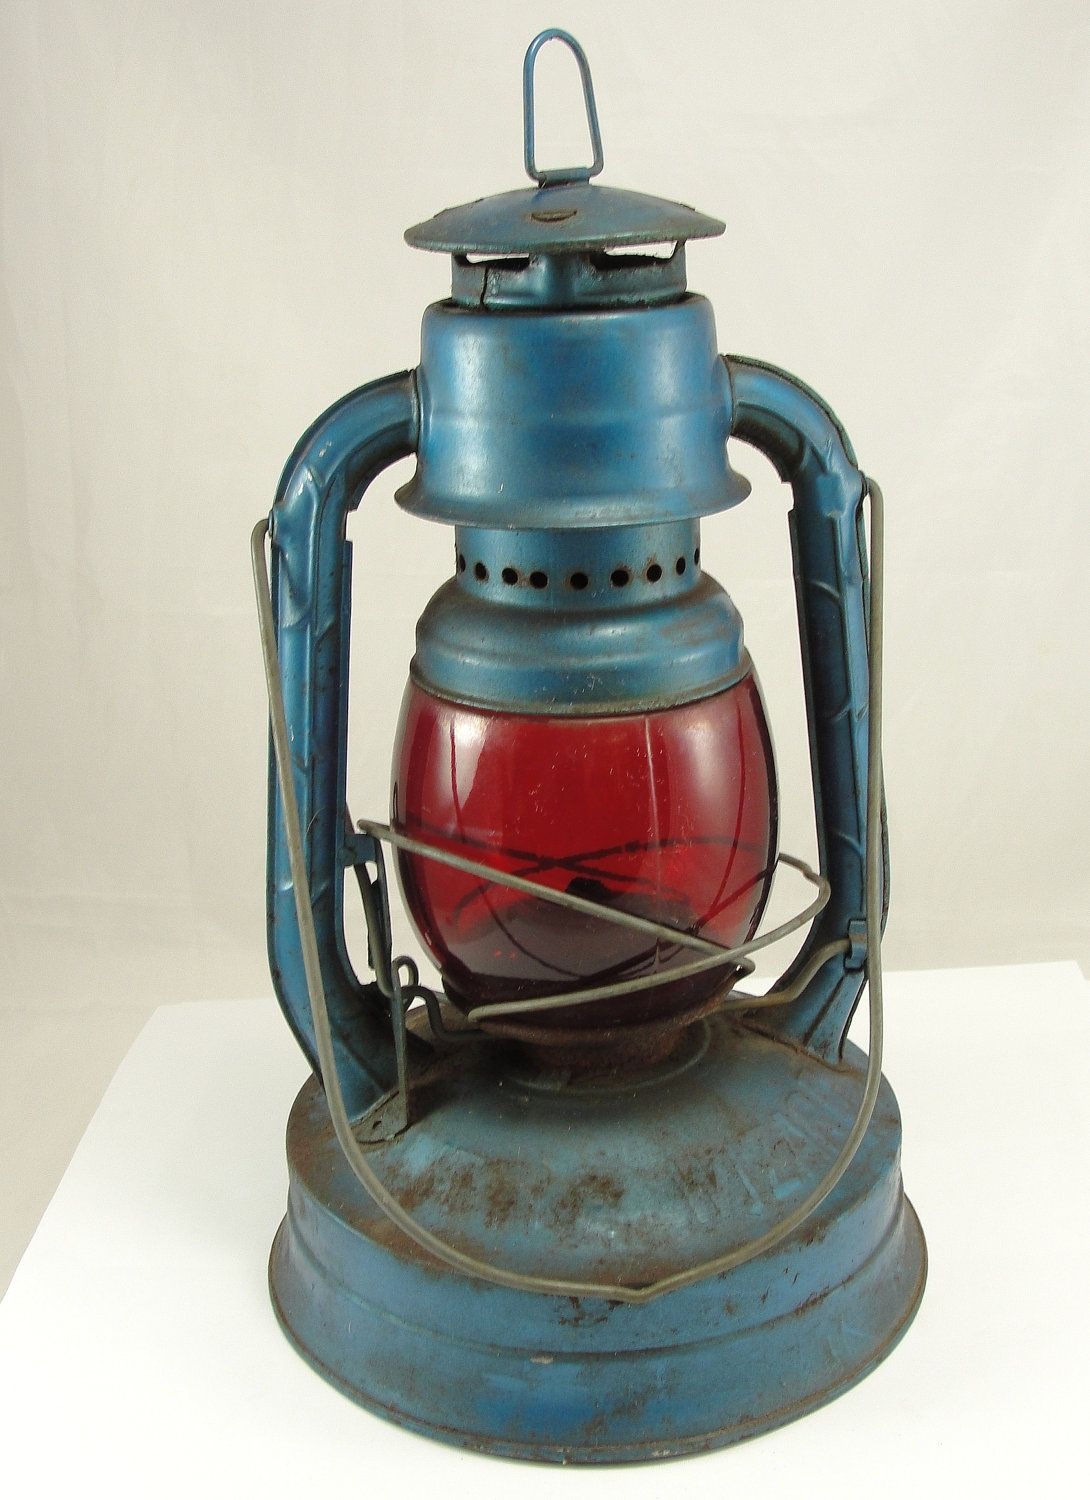 Old Kerosene Lanterns For Sale | Vintage Dietz Lantern ...